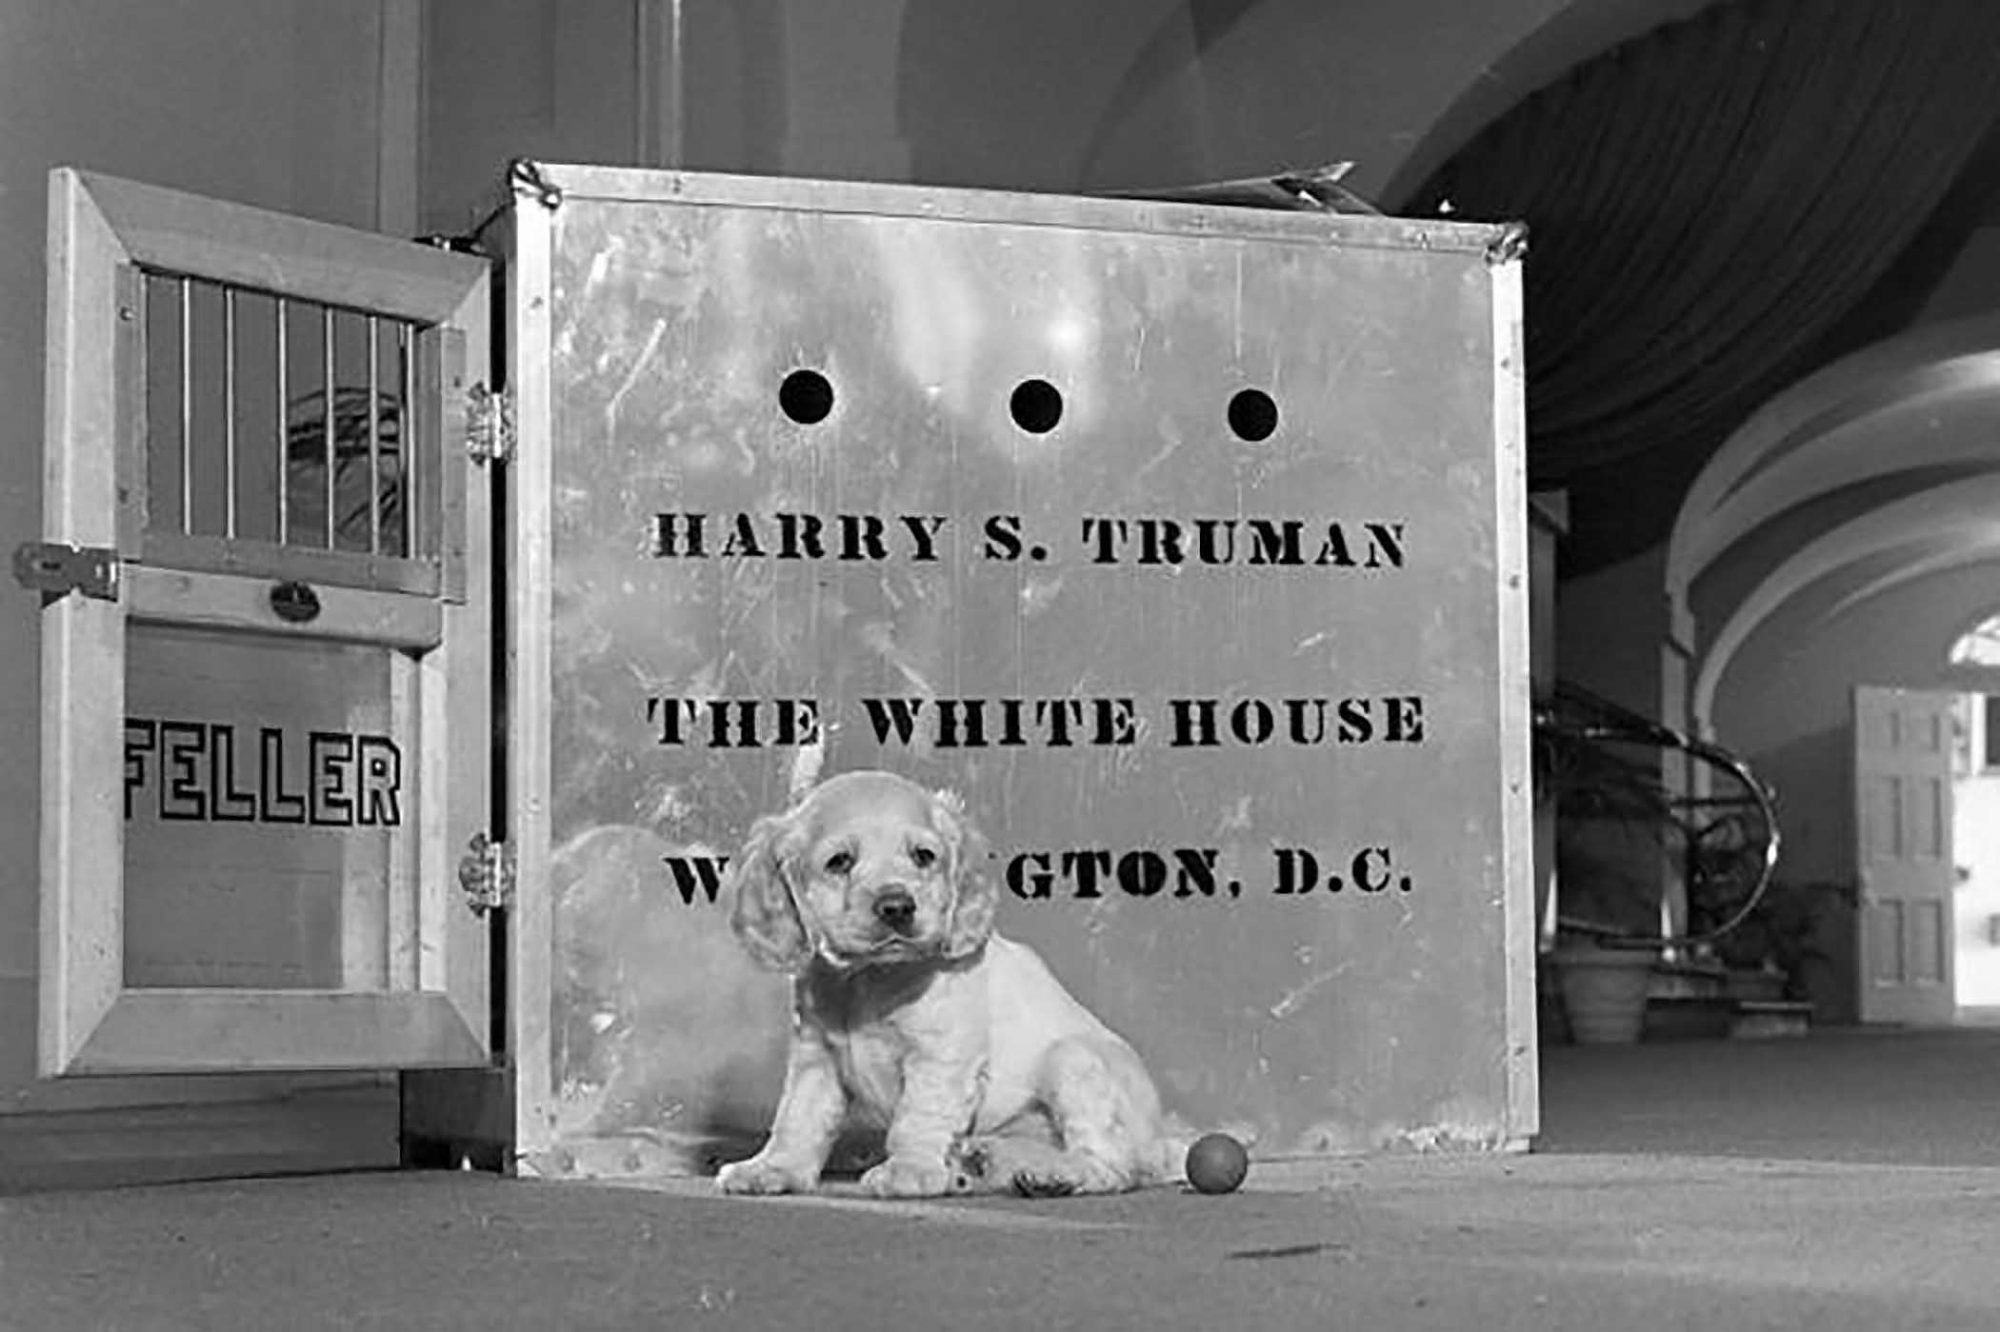 Photograph of Harry S. Truman's puppy